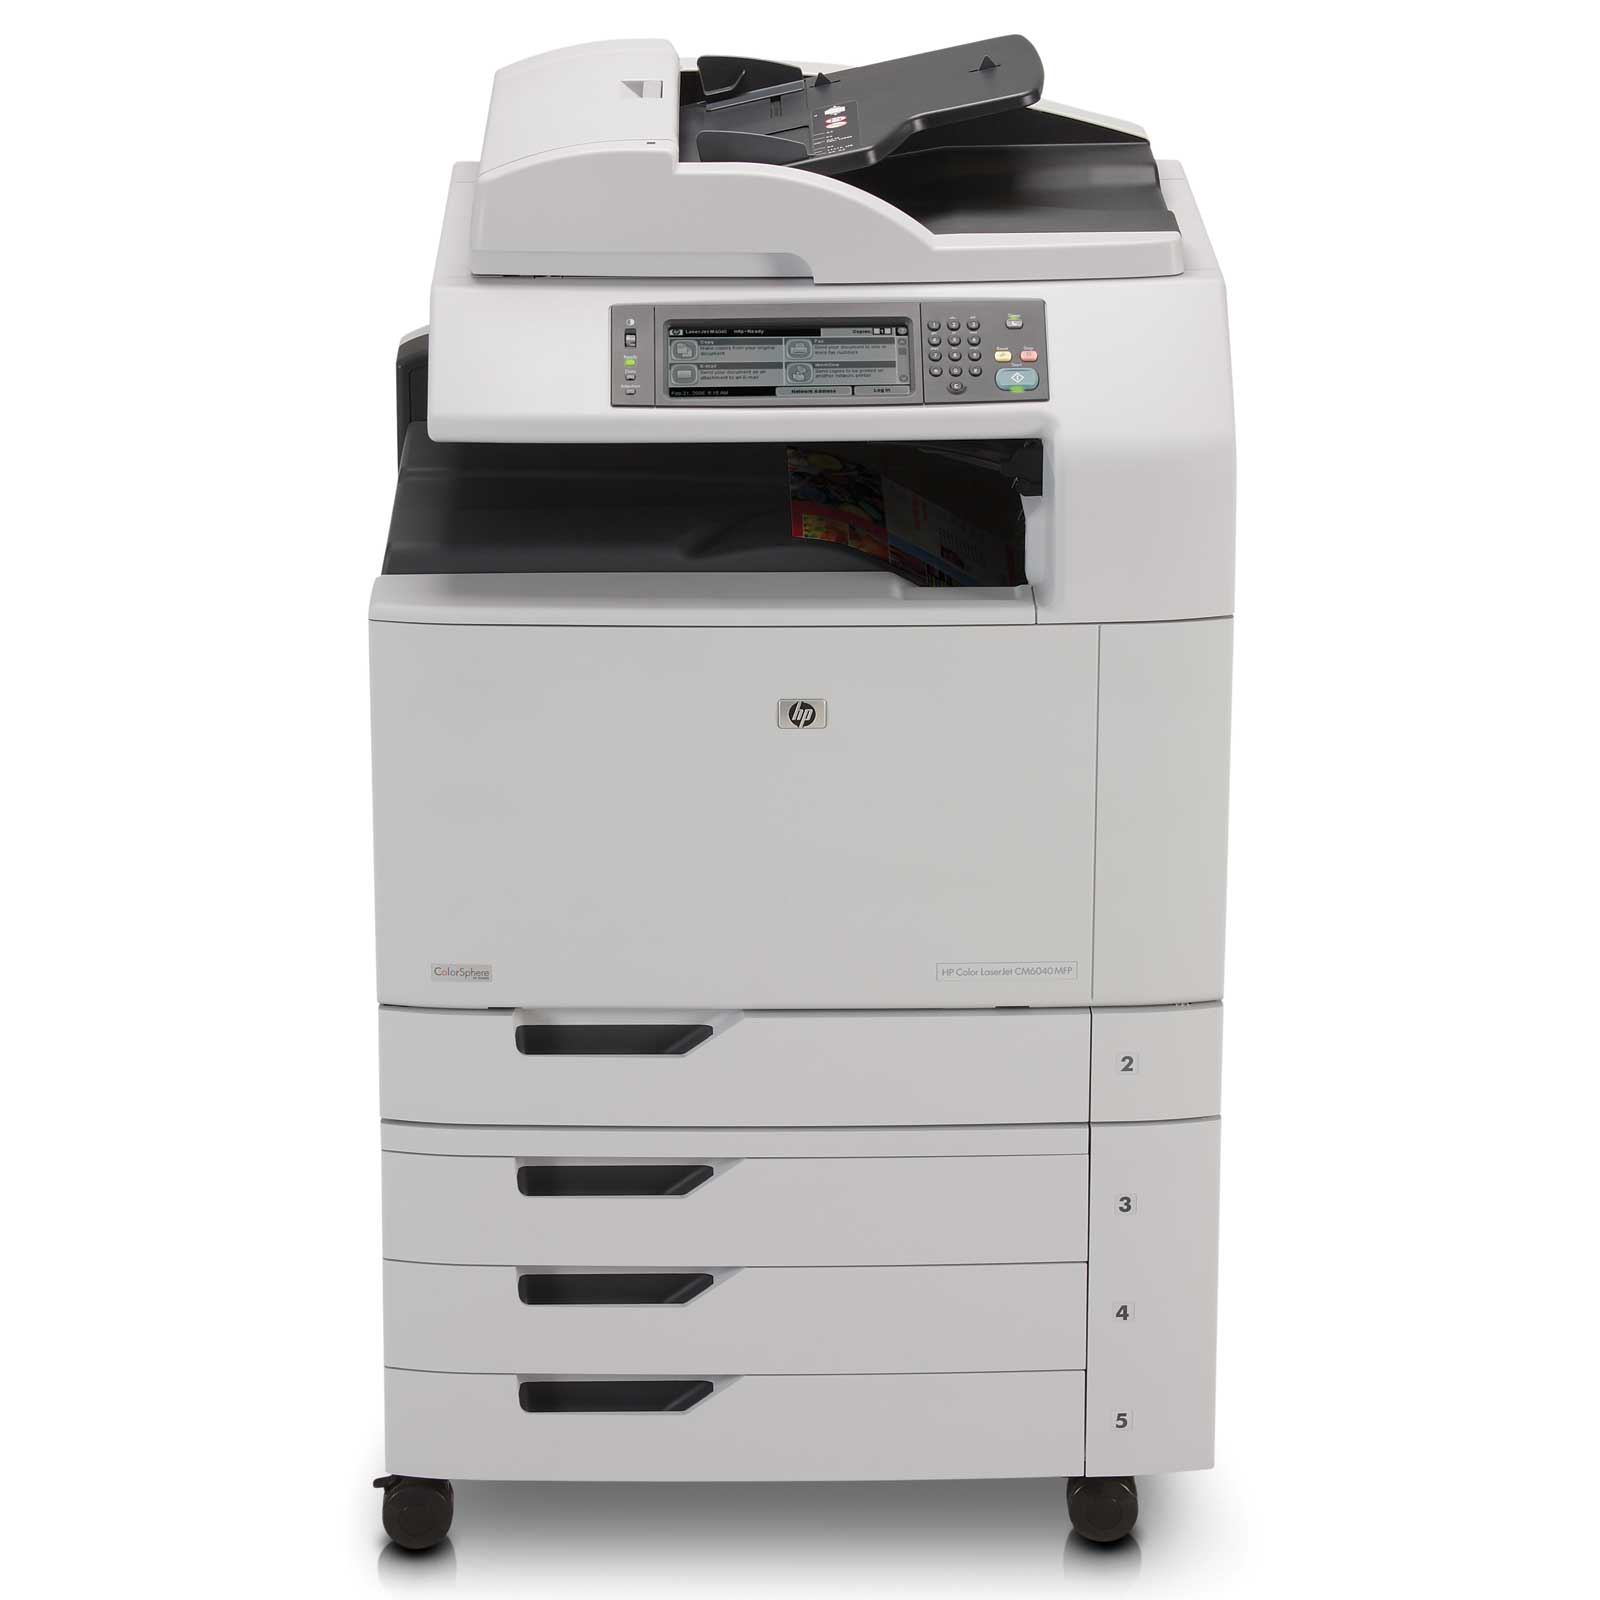 HP Color LaserJet CM6040   41стр/мин и 768мб ОЗУ.